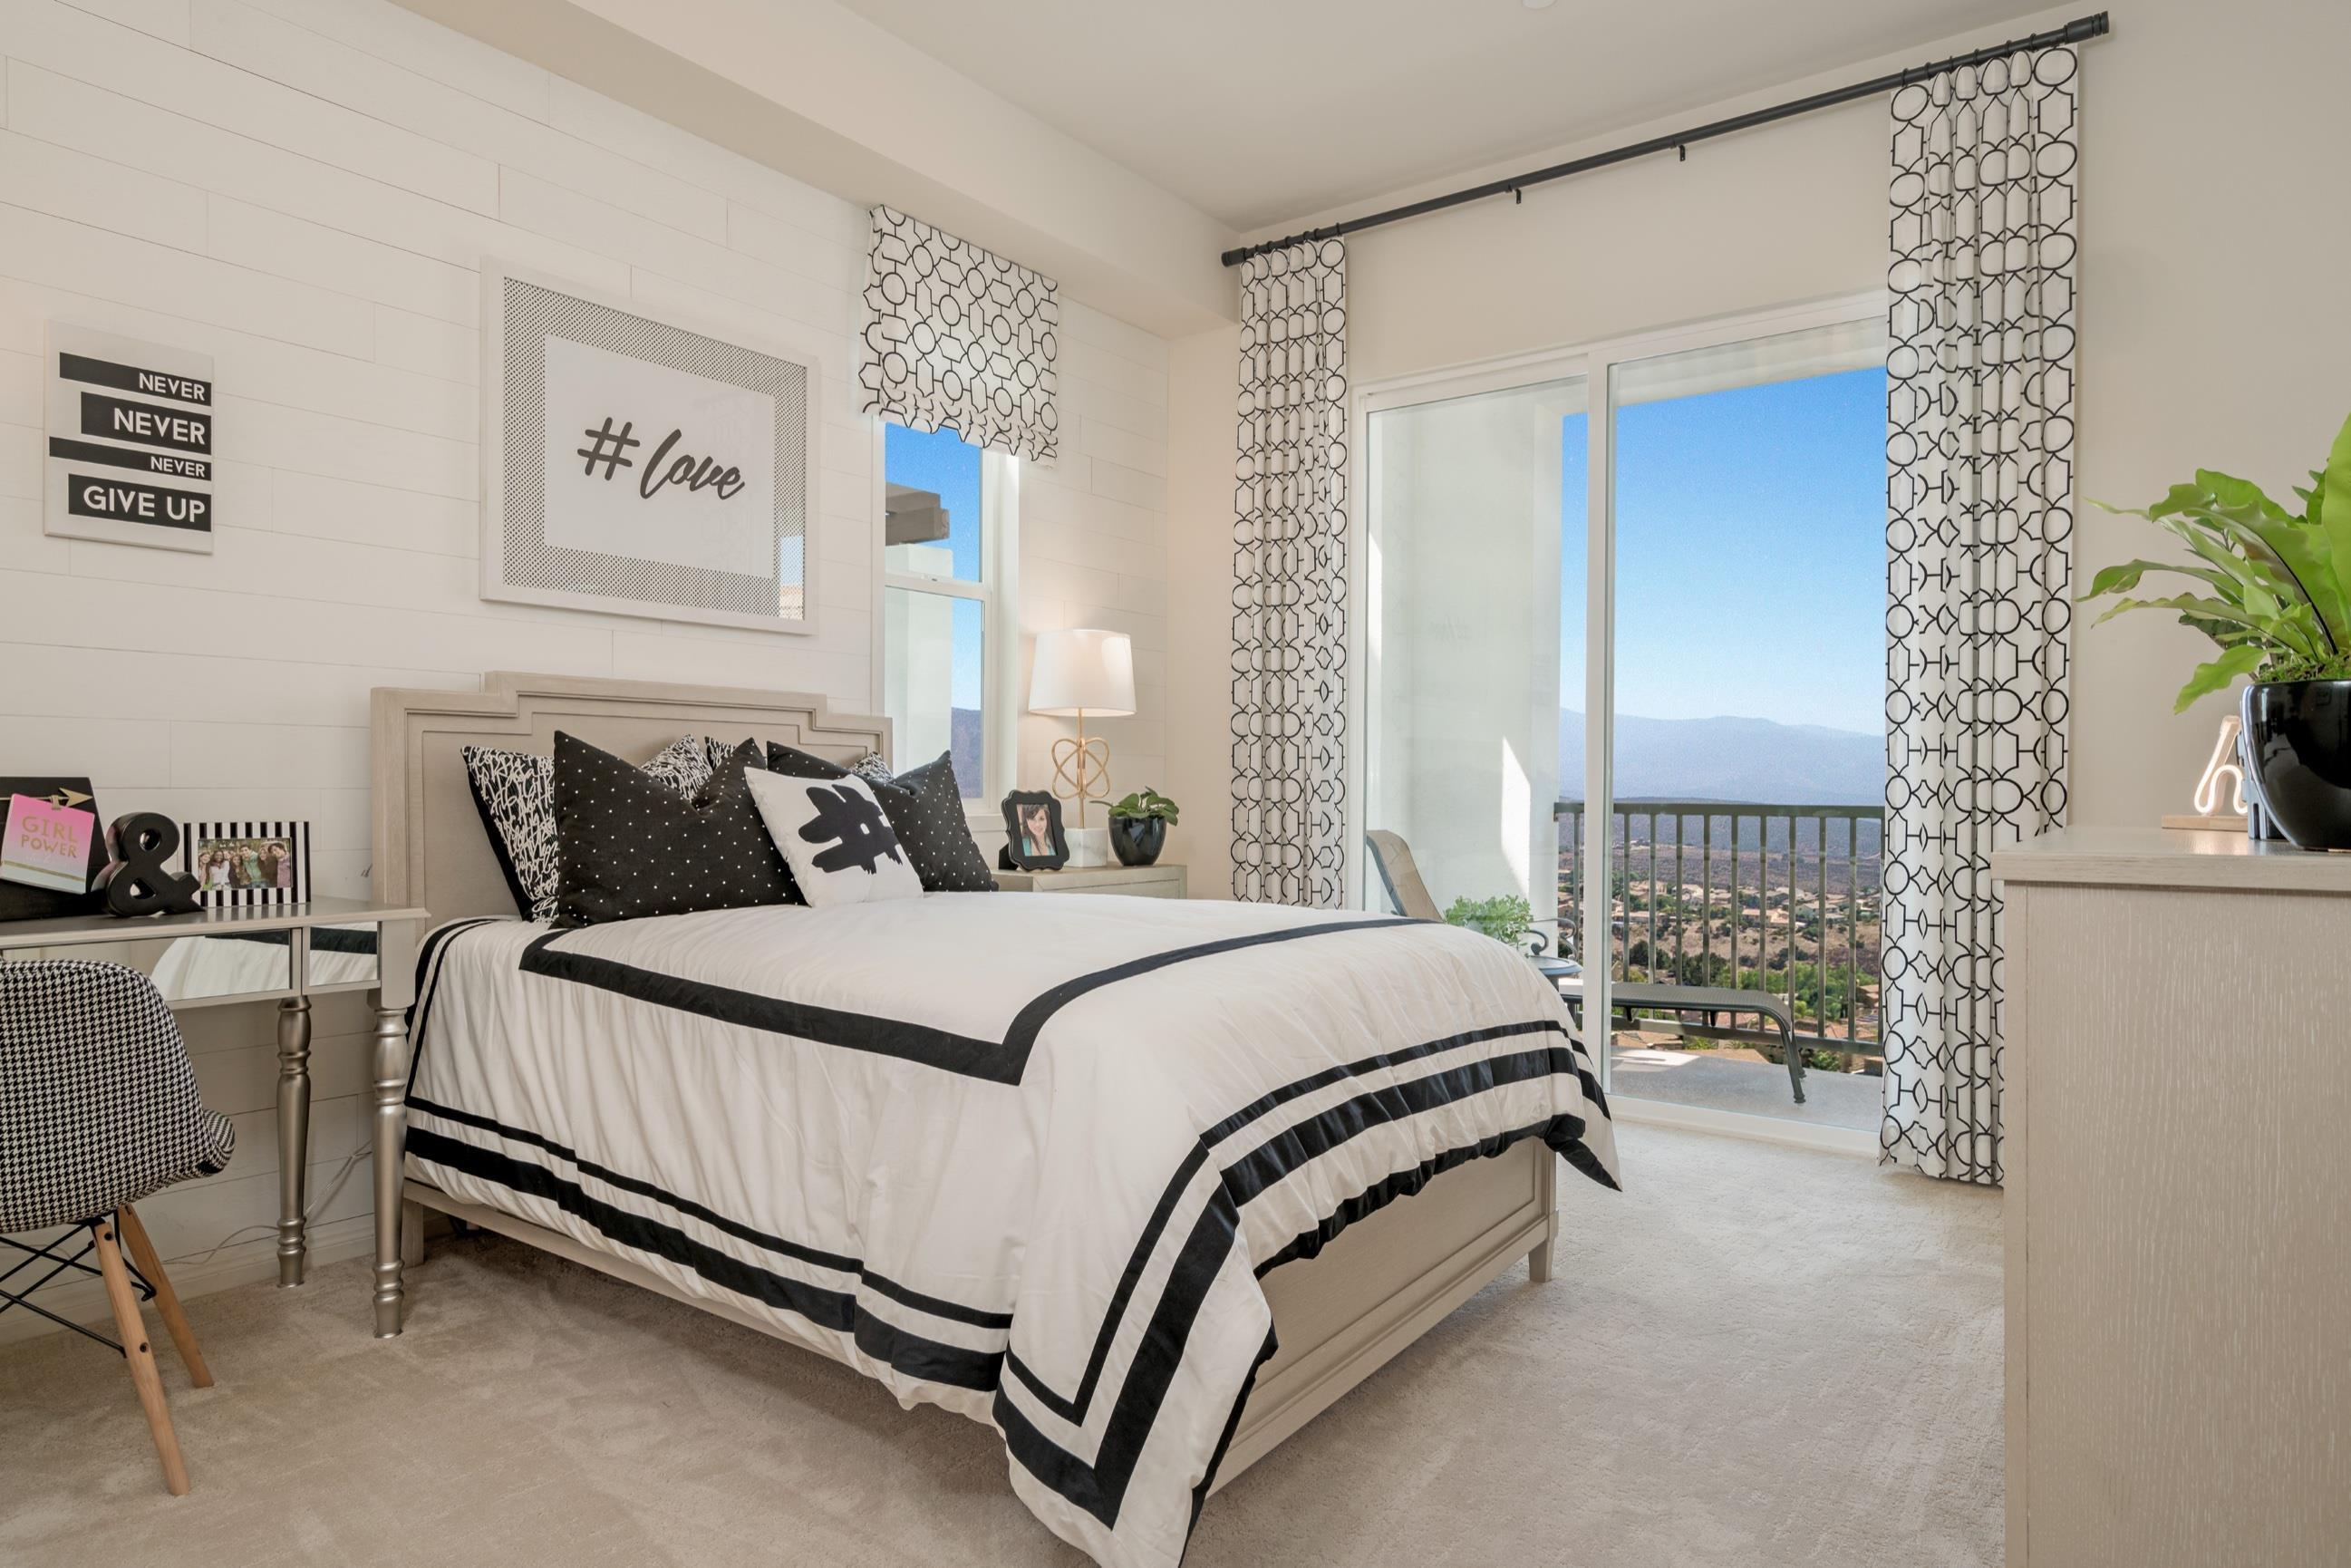 Bedroom featured in the Plan 6 By Heritage Building & Dev't in San Diego, CA